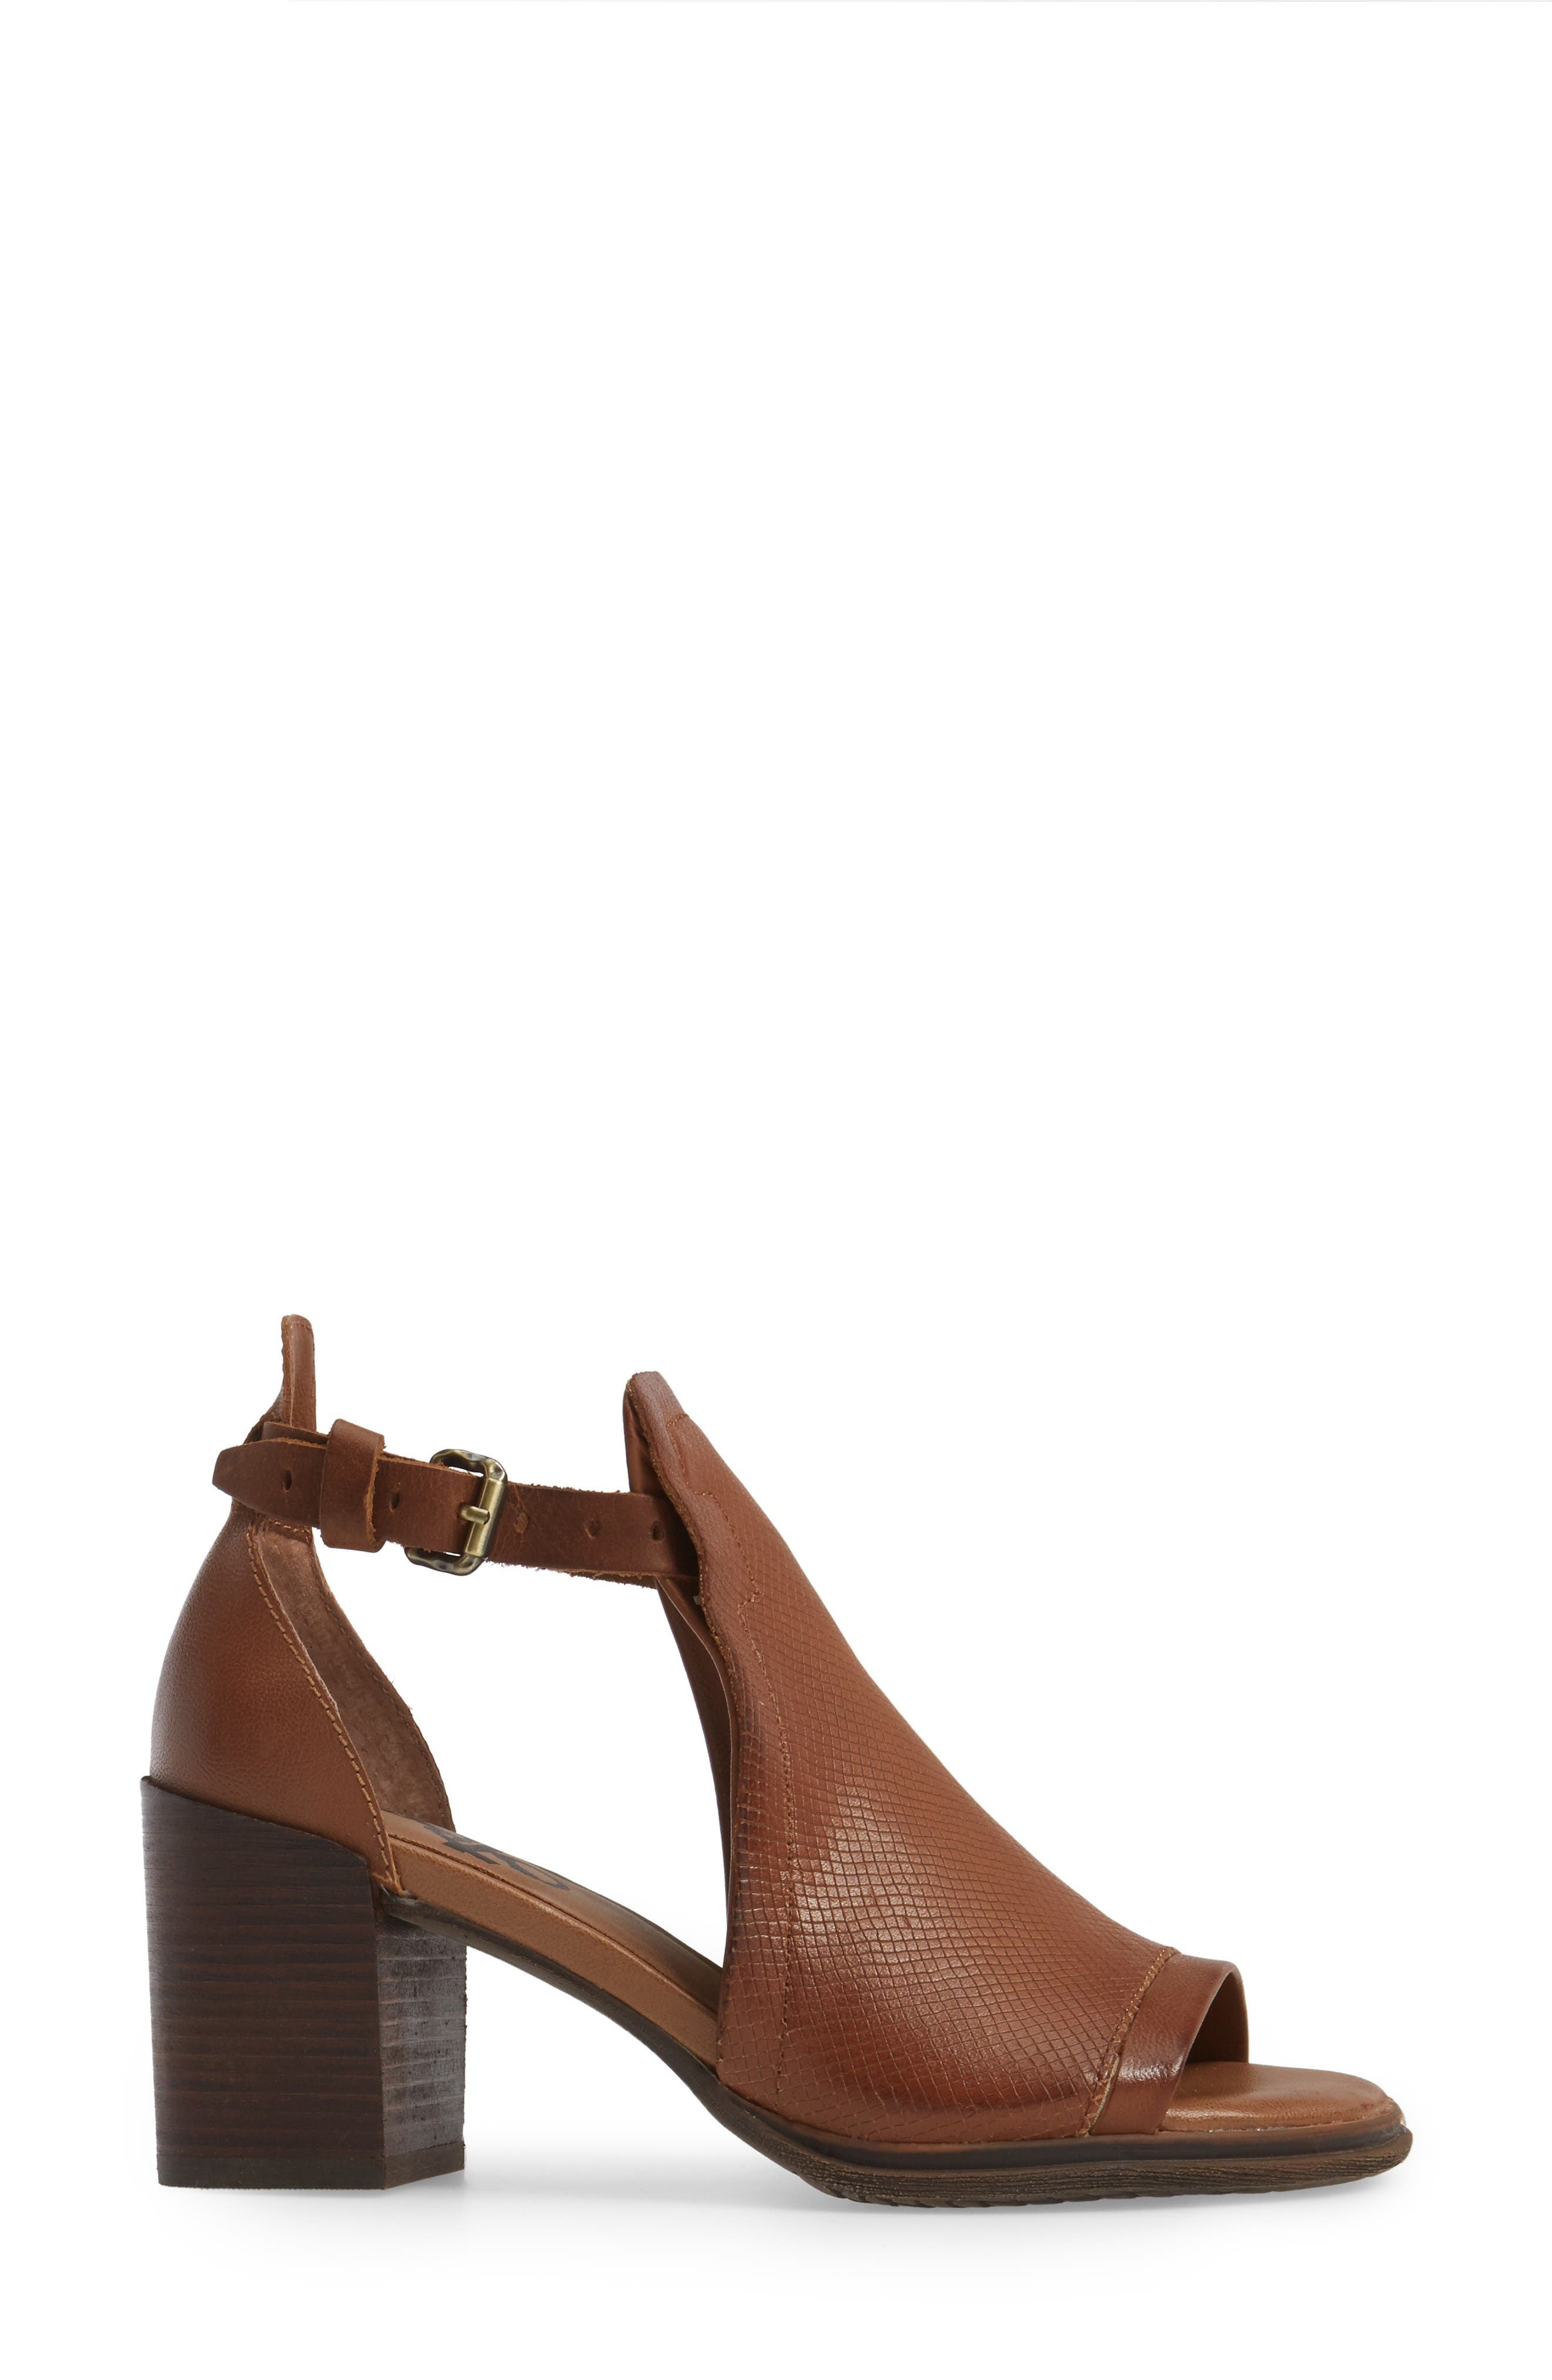 Metaphor Open Side Bootie,                             Alternate thumbnail 3, color,                             Medium Brown Leather